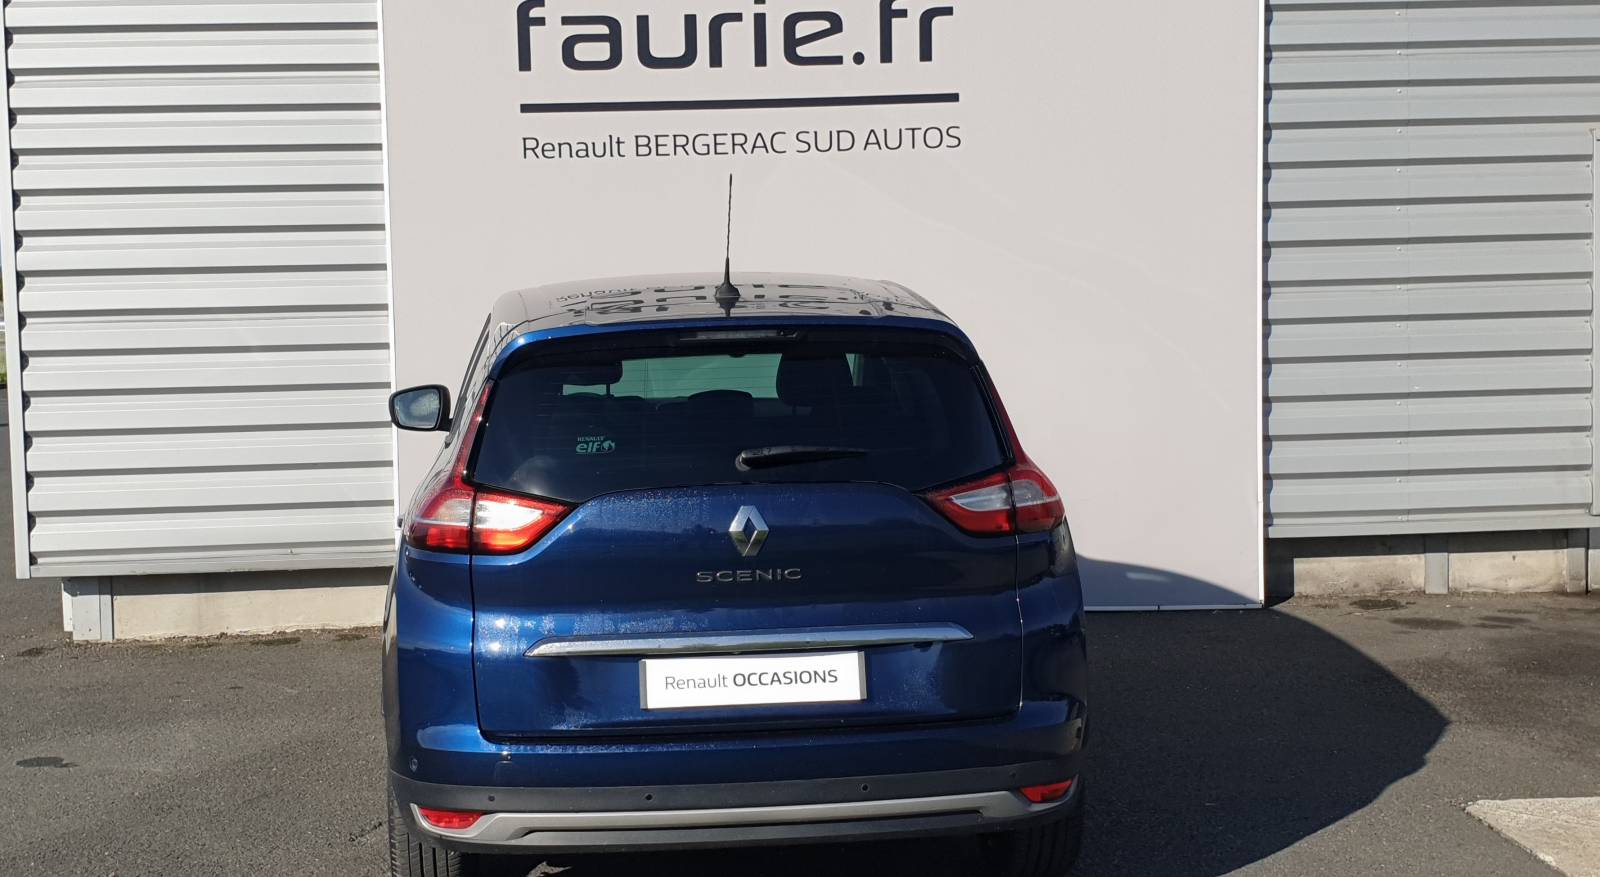 RENAULT Grand Scenic Blue dCi 150 - véhicule d'occasion - Site Internet Faurie - Renault - Faurie Auto Bergerac - 24100 - Bergerac - 6